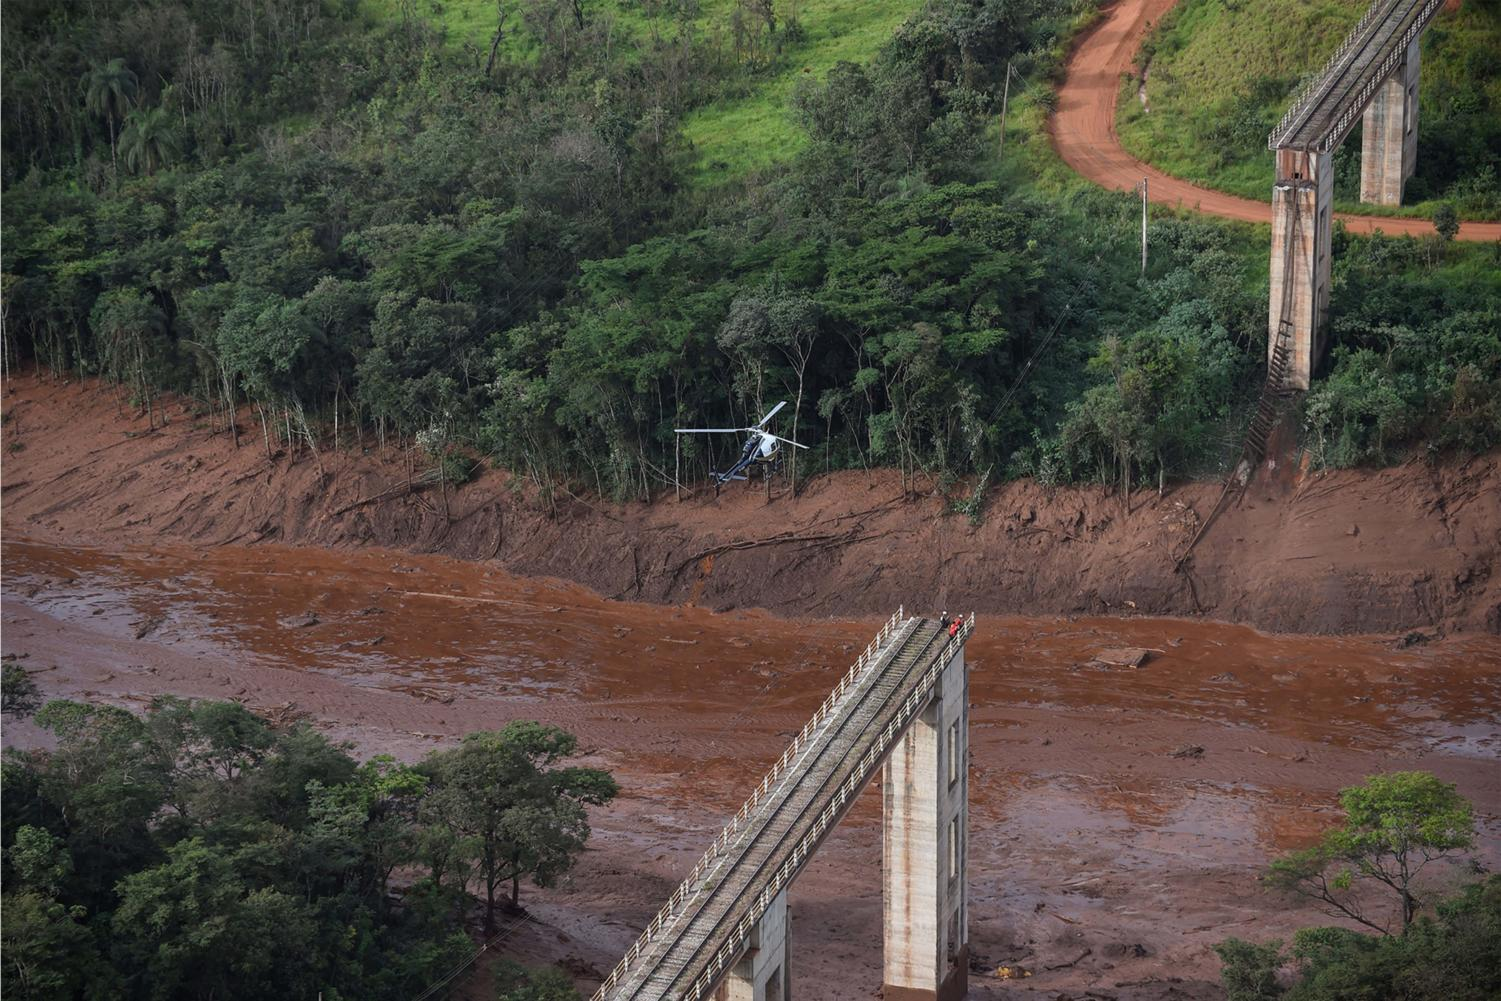 Aerial view taken after the collapse of a dam which belonged to Brazil's giant mining company Vale, near the town of Brumadinho in southeastern Brazil, on Friday, Jan. 25, 2019. The collapse unleashed a torrent of mud on a riverside town and surrounding farmland, destroying houses, leaving 200 people missing and raising fears of a number of deaths, according to officials. (Douglas Magno/AFP/Getty Images/TNS) **FOR USE WITH THIS STORY ONLY**